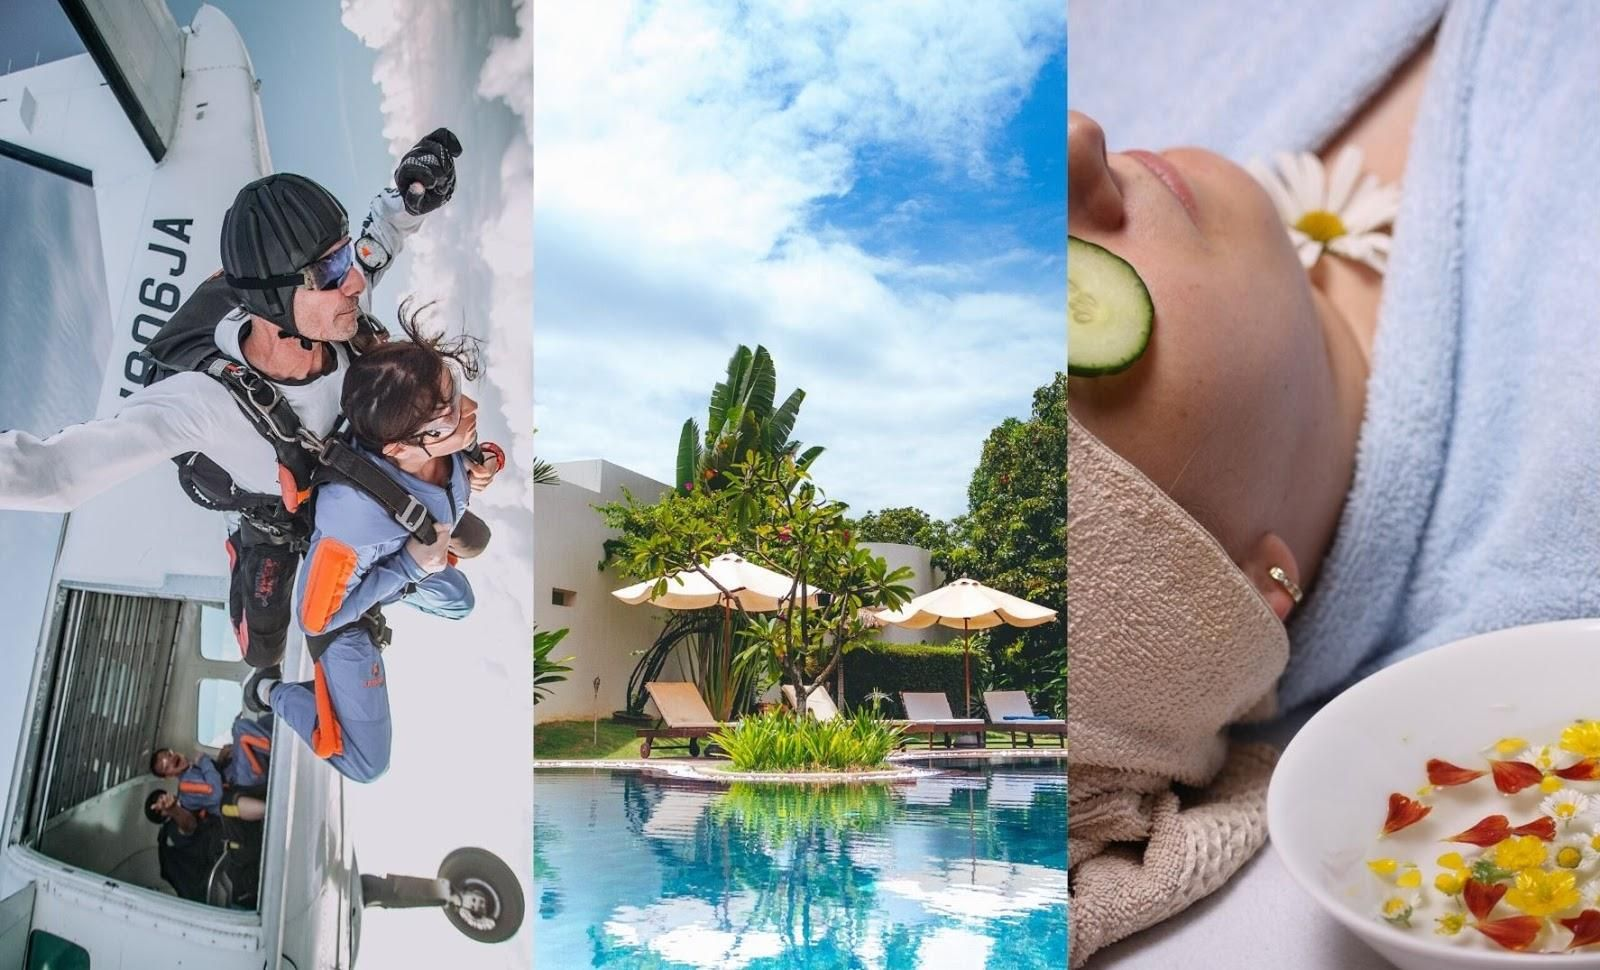 Three pictures: One featuring someone skydiving, another featuring a pool and another featuring a lady having a spa treatment.